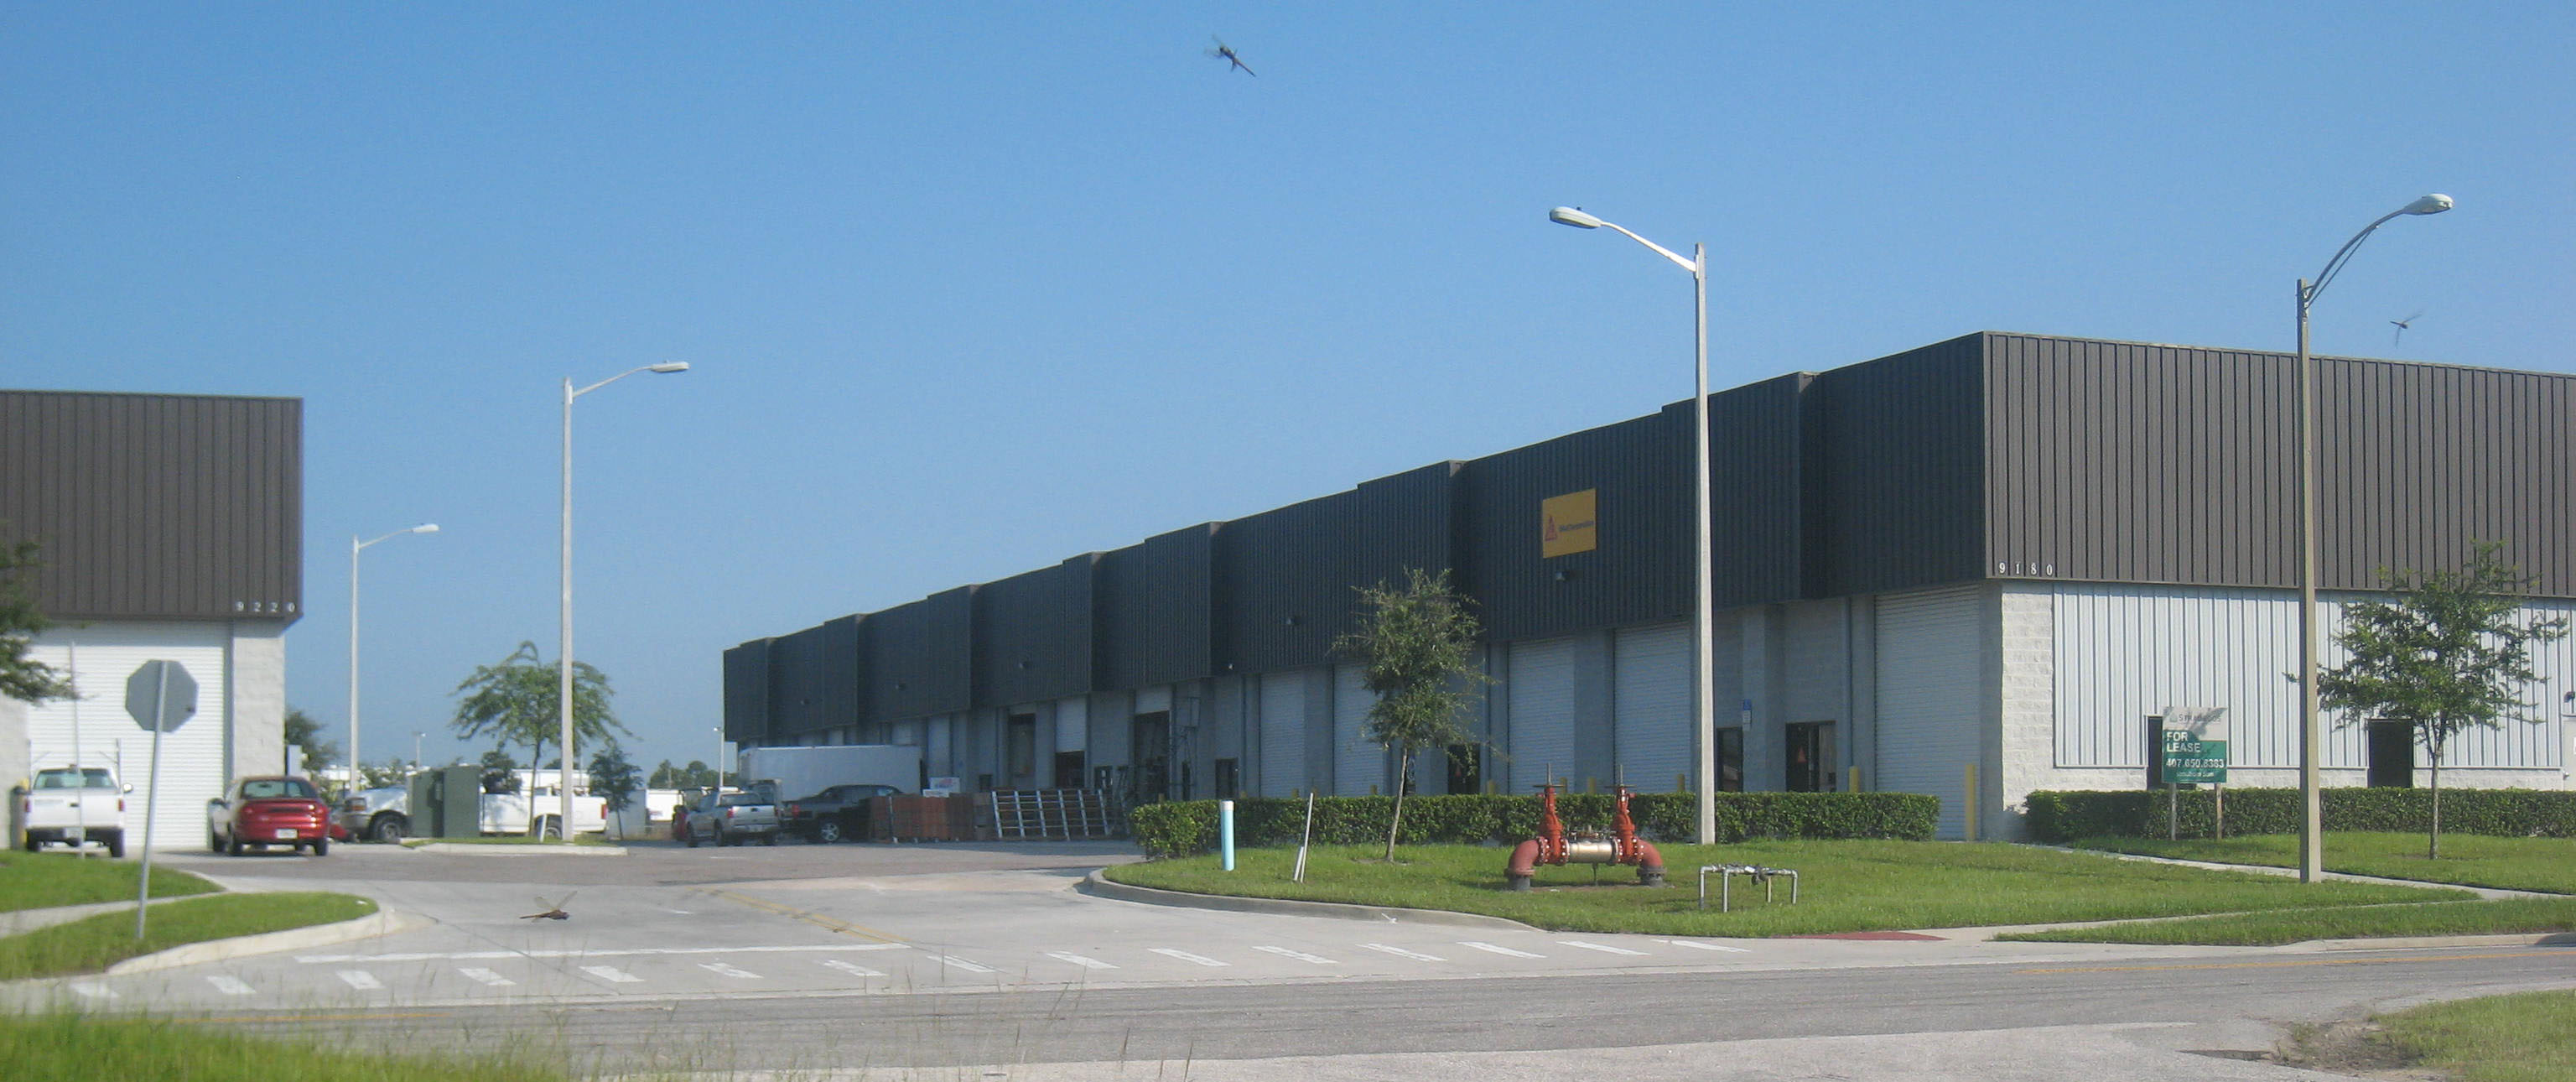 Airport Distribution Center Small Bay Warehouses